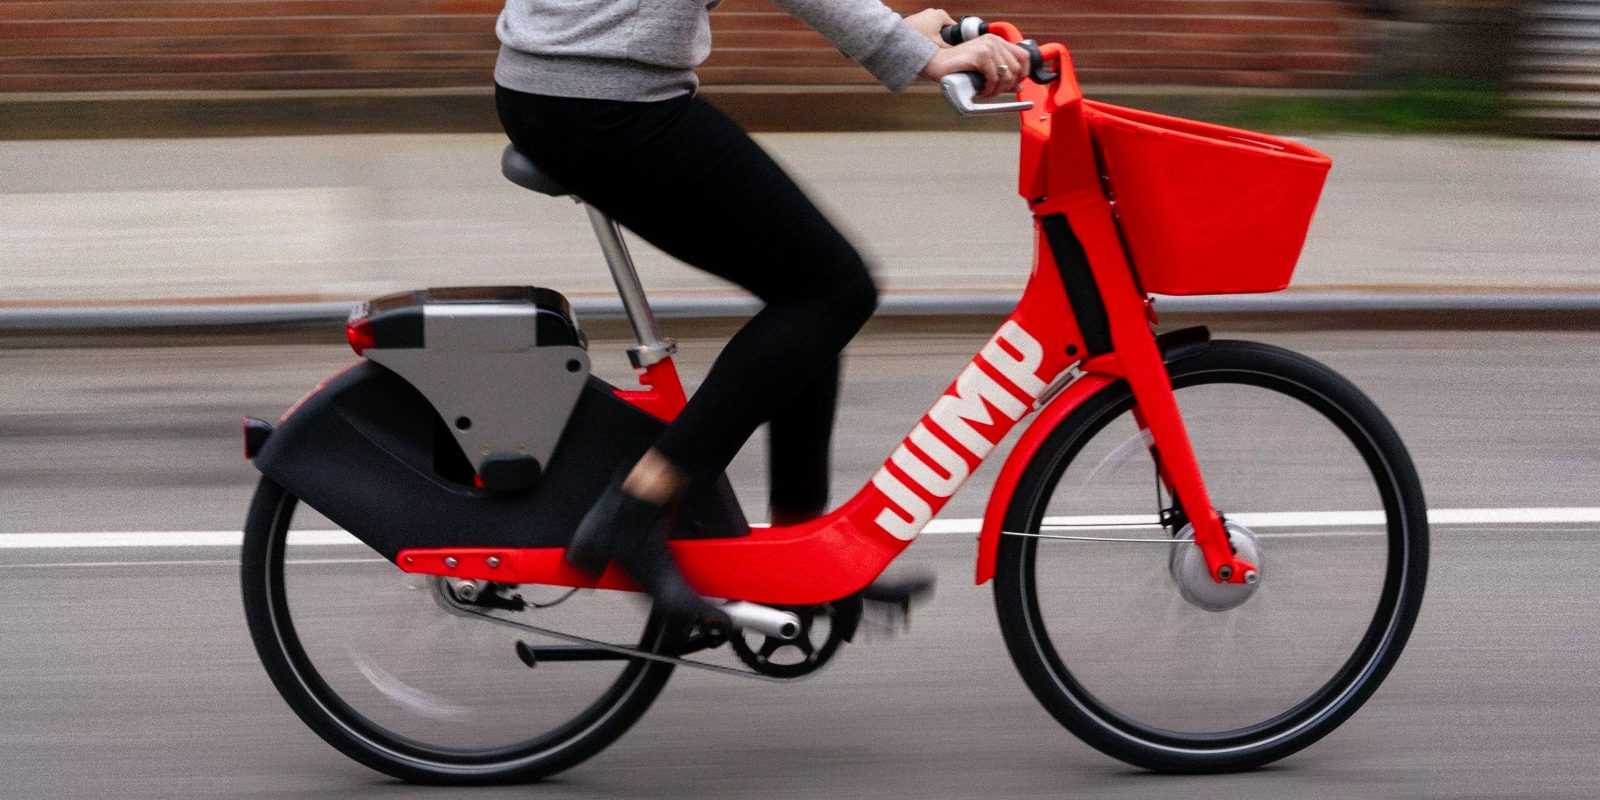 Uber's electric bicycles are starting to get more riders than their cars